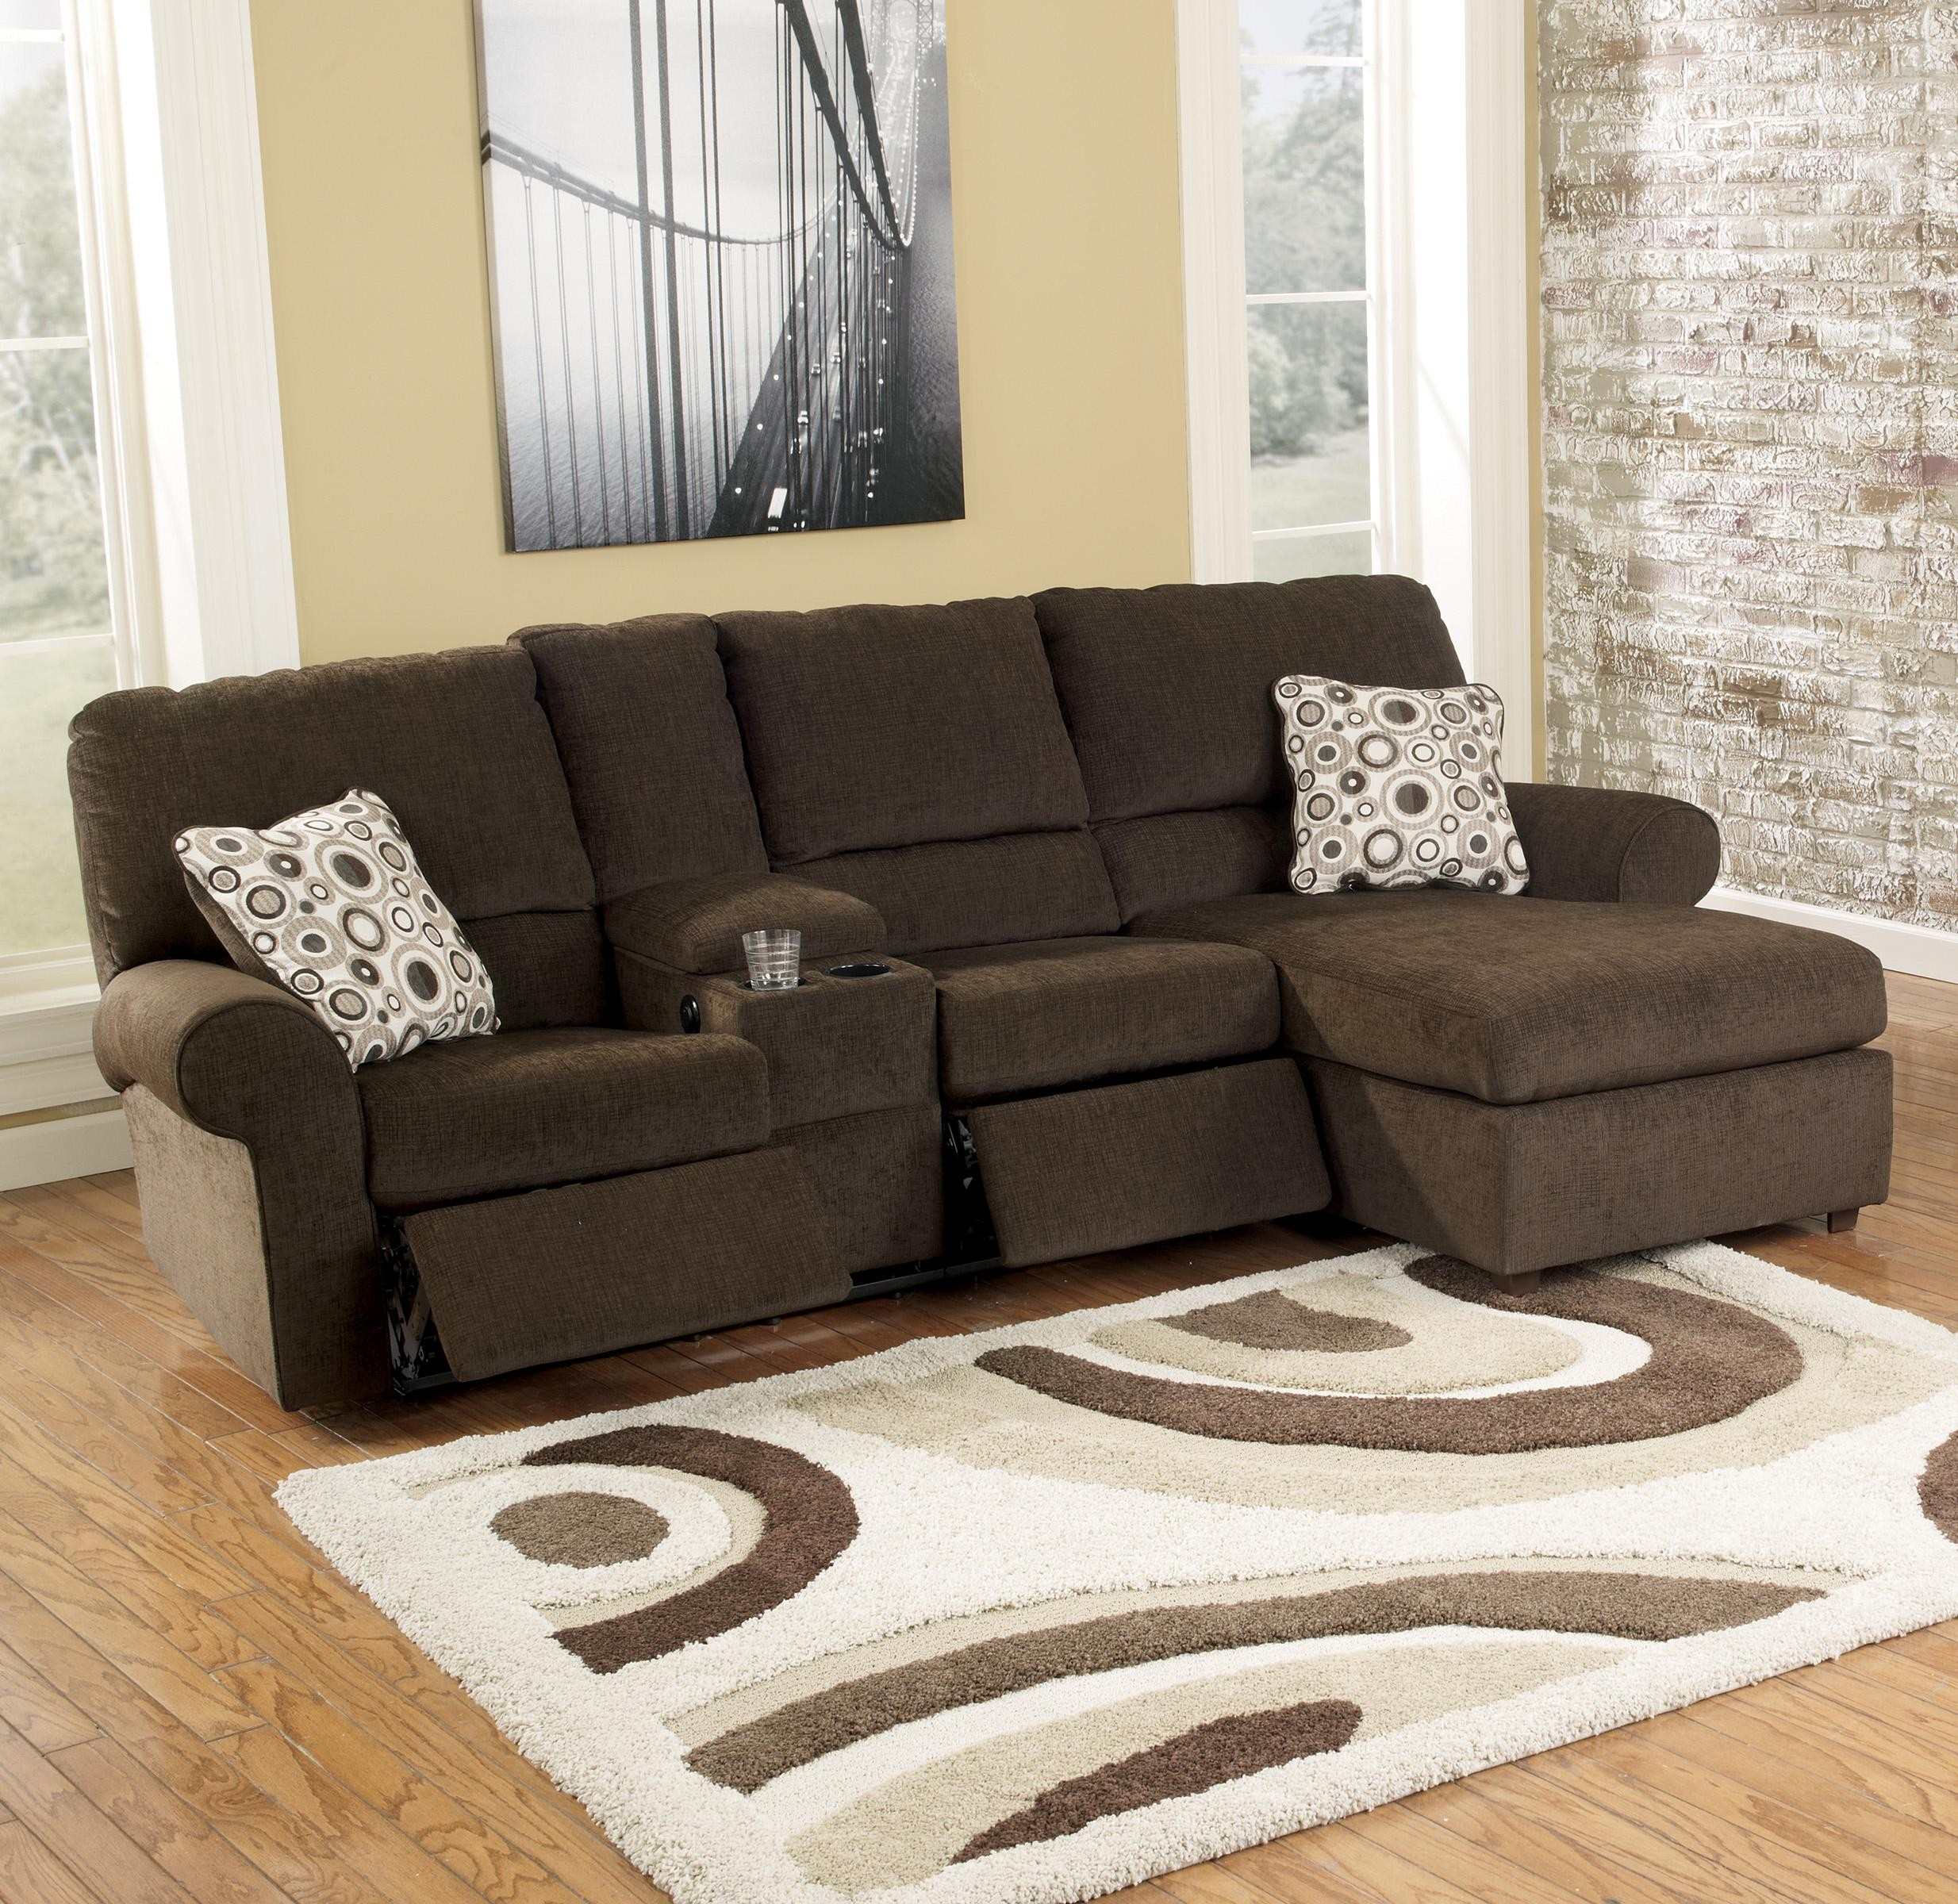 Sectional sofas with Recliners and Chaise Fantastic Vanity top Grain Leather Reclining Sectional Natuzzi Leather Décor